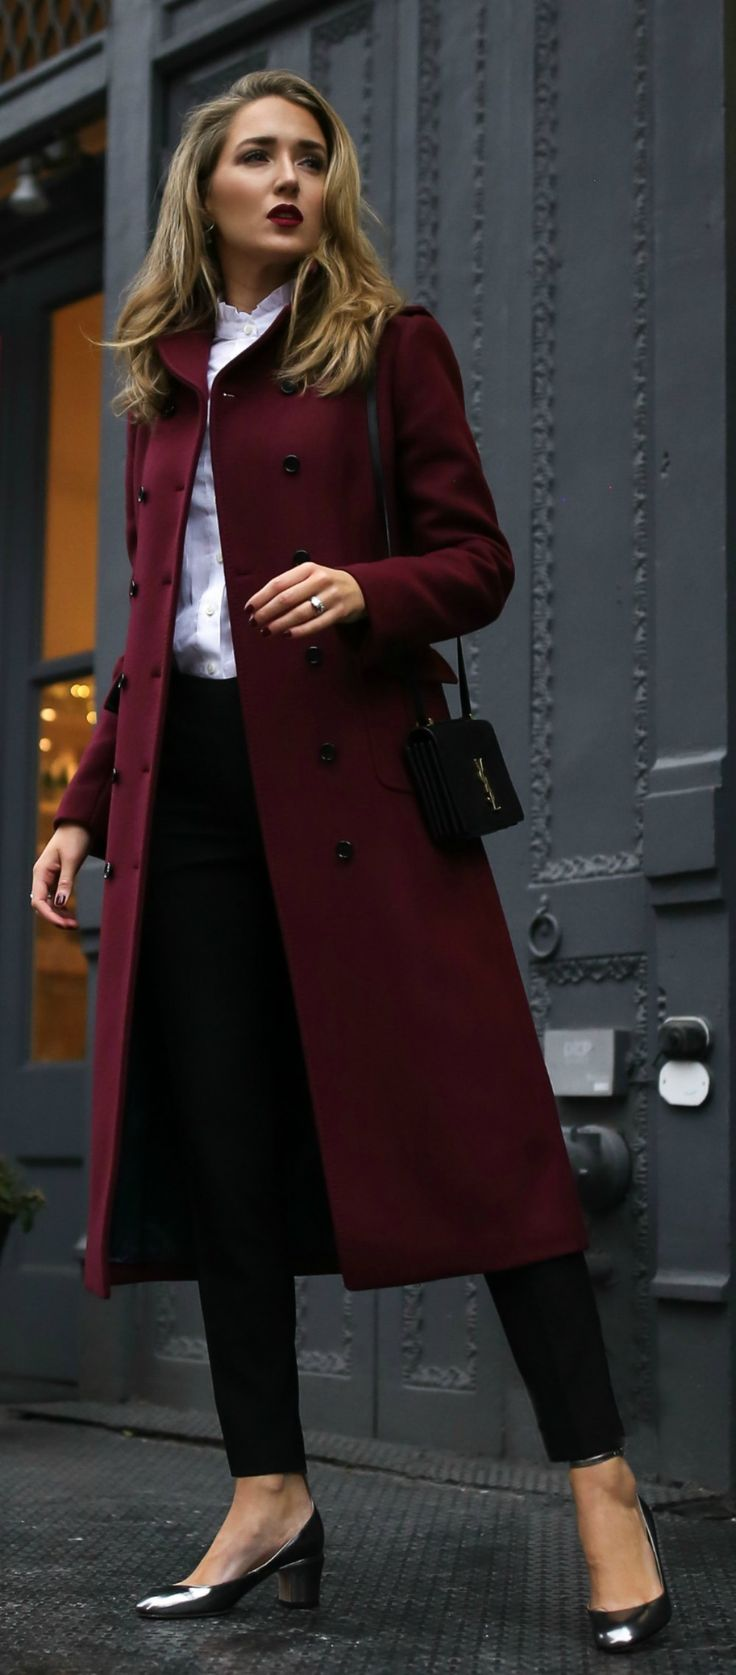 THE DESIGNER SALE YOU CAN NOT MISS! // Long burgundy double-breasted coat, metallic silver ankle strap pump, tailored high-waisted black pants, white ruffle blouse, black shoulder bag, deep red lip { Saint Laurent, Valentino, Theory, winter style, what to wear to work, holiday outfits, casual business attire, classic style}